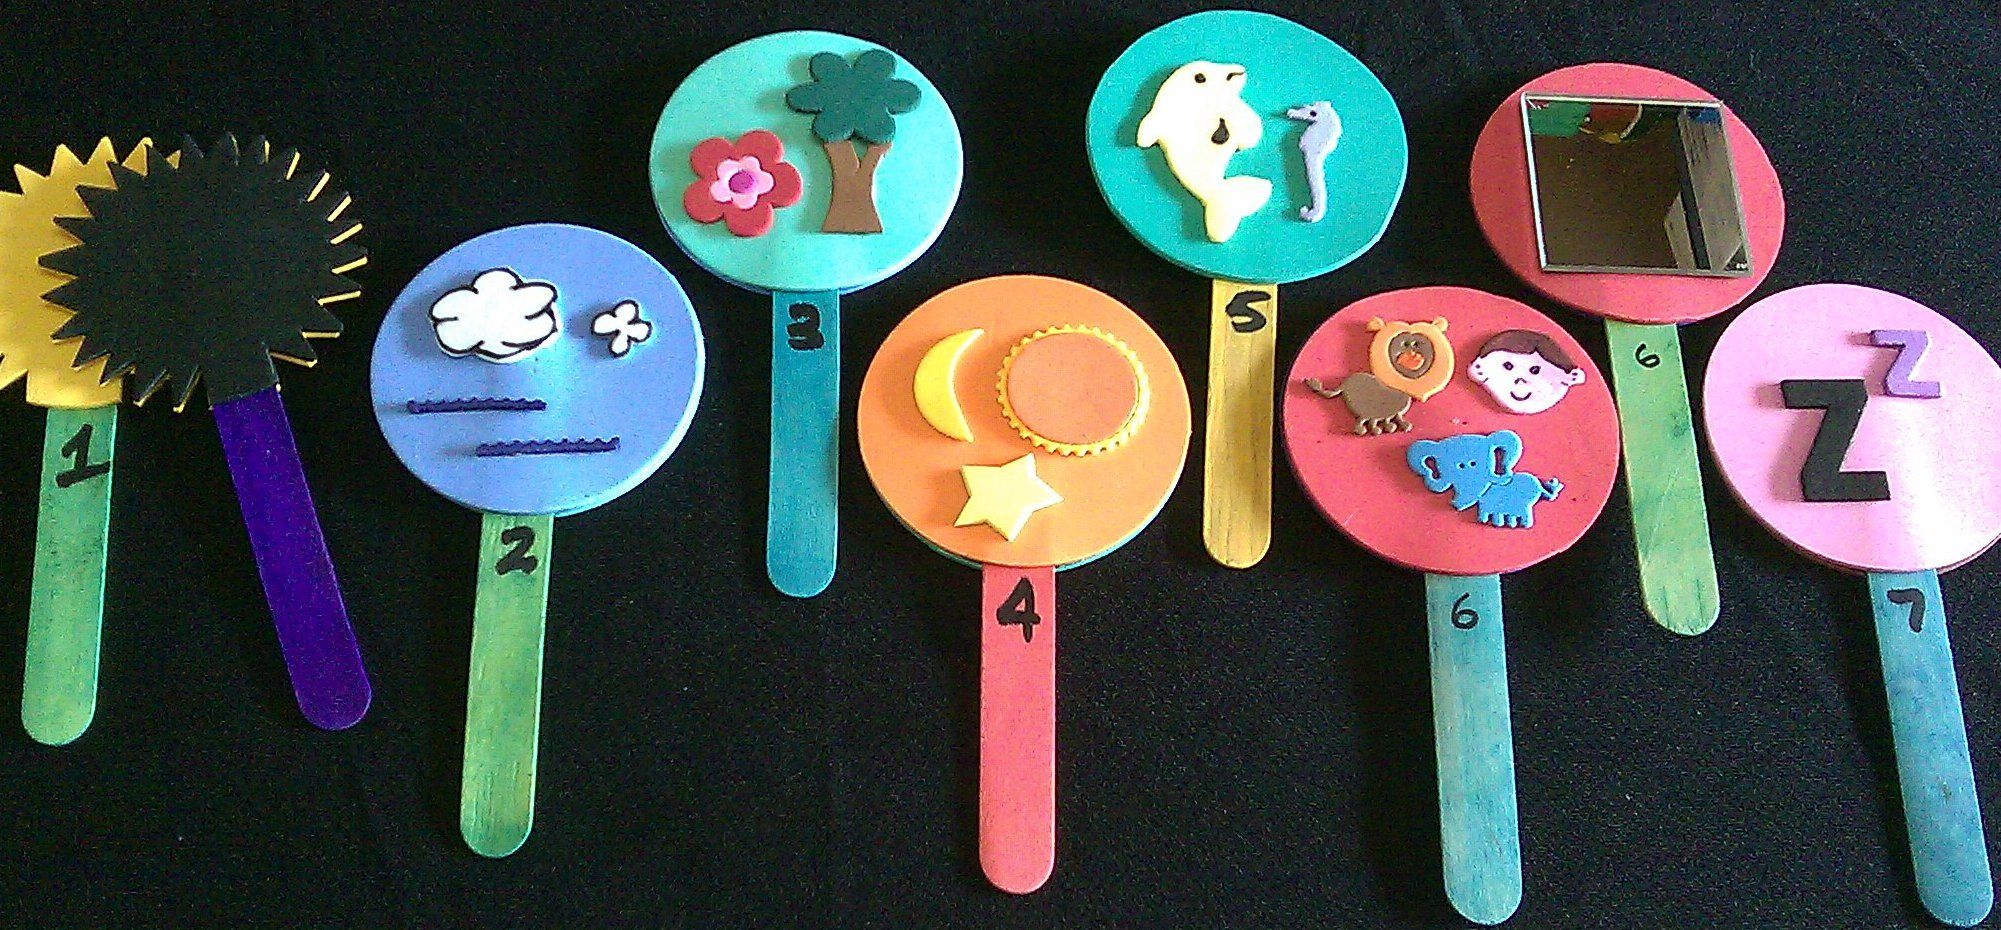 42++ Sunday school crafts for kids creation ideas in 2021